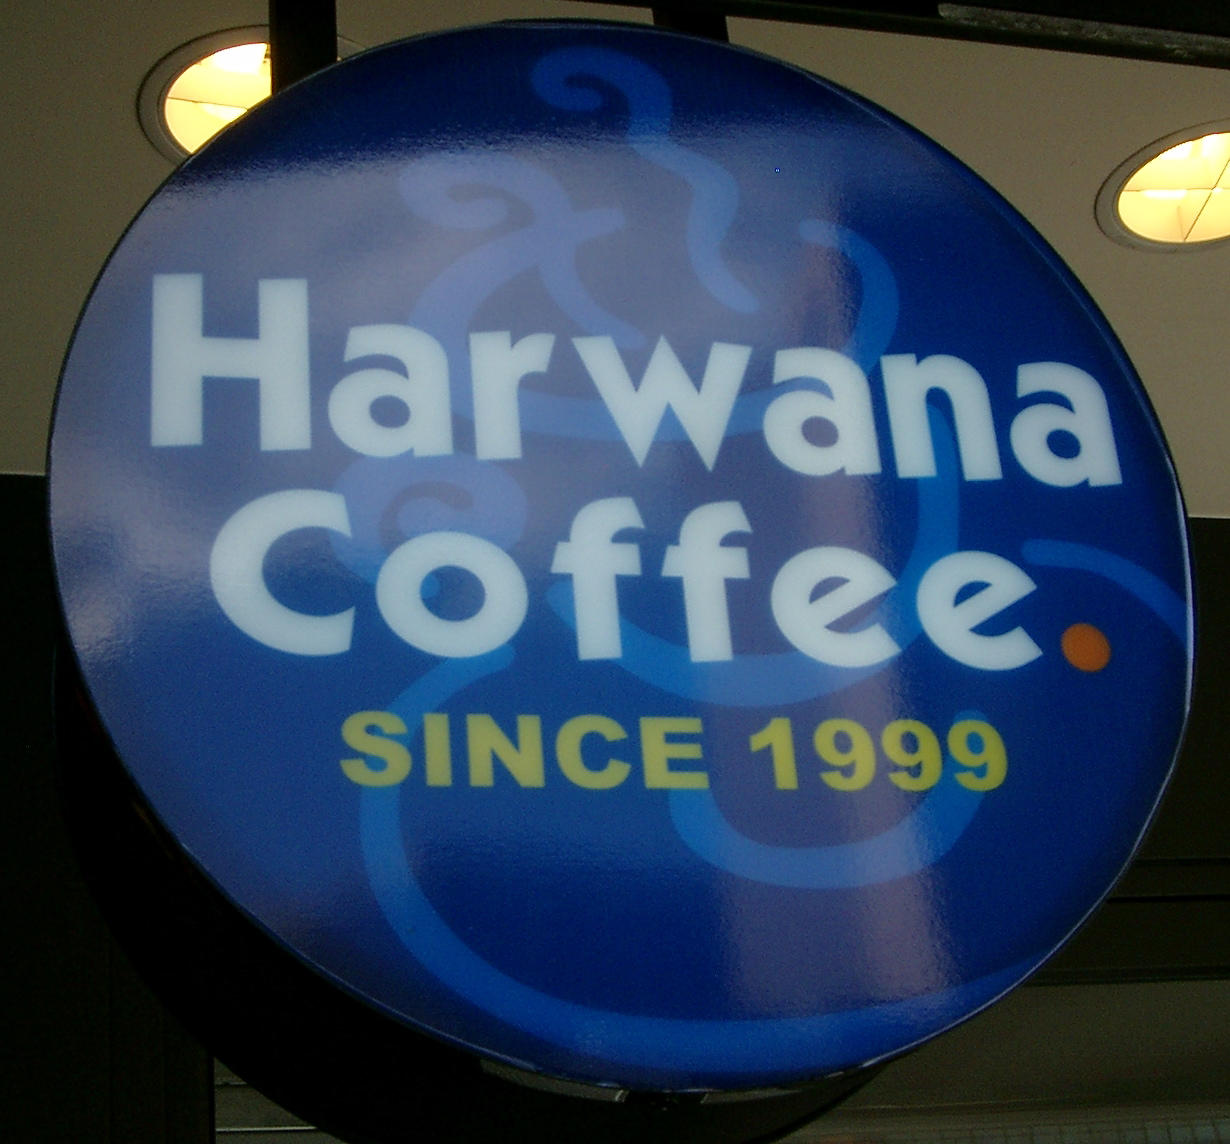 Harwana Coffee